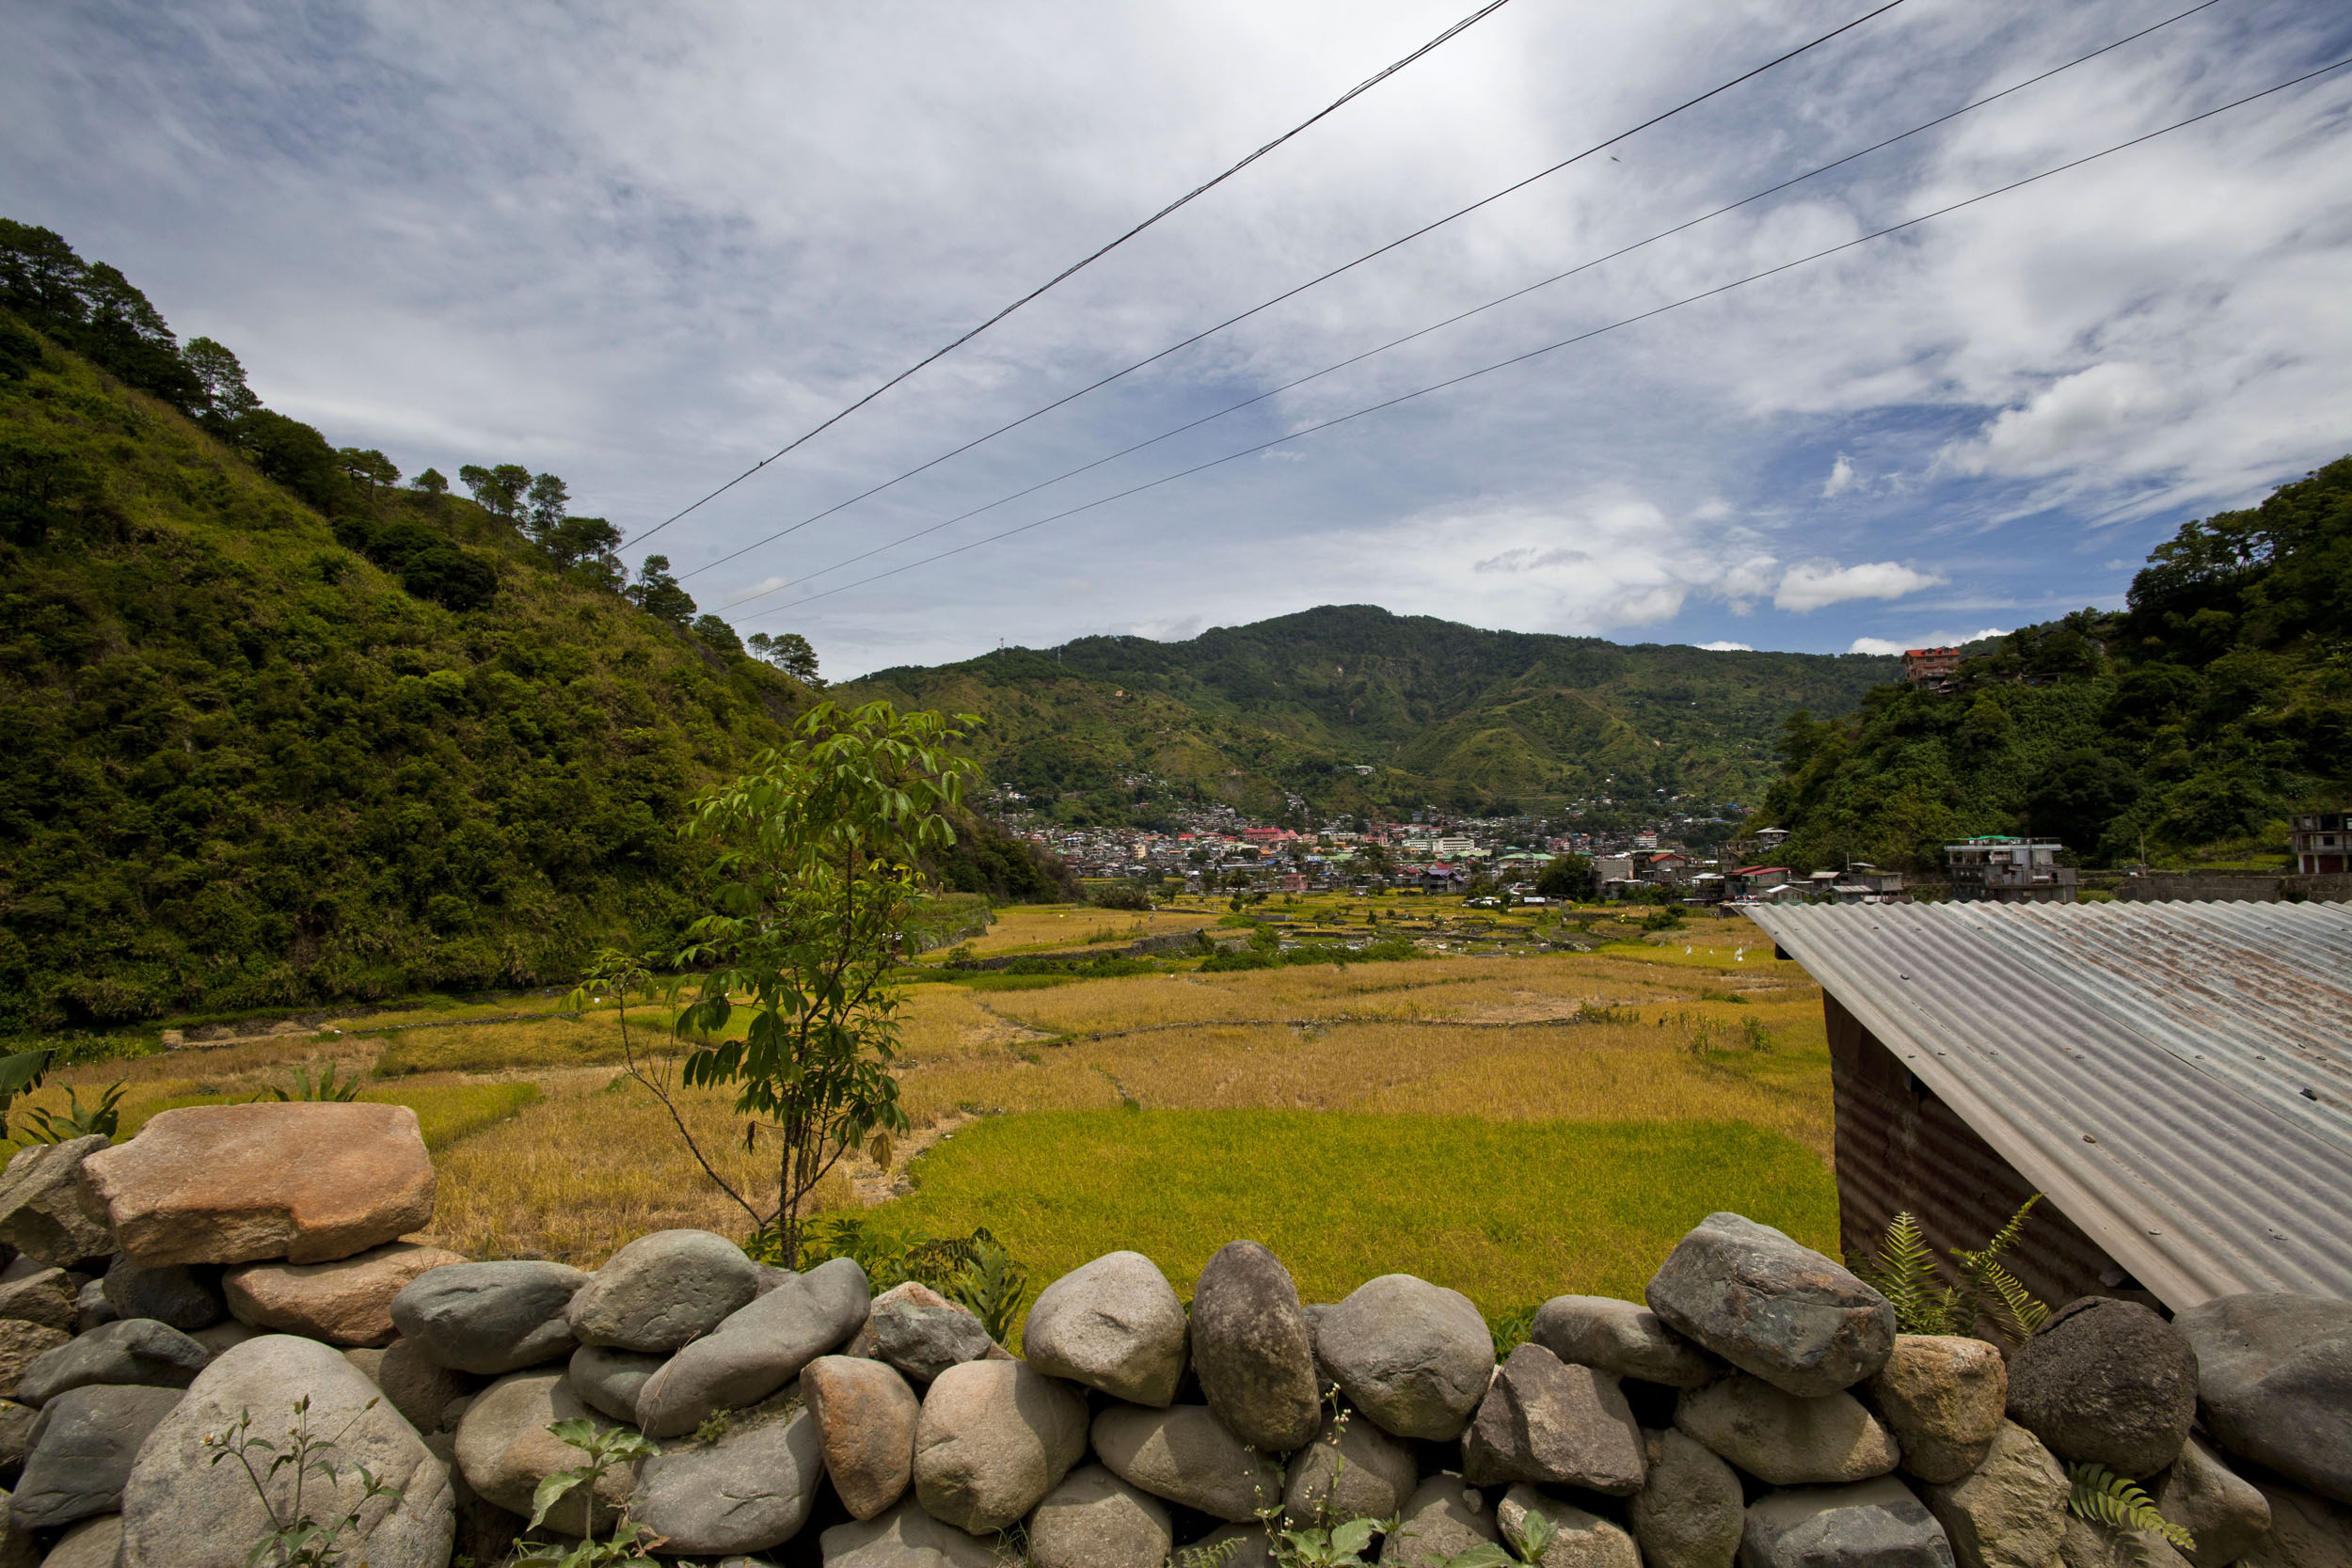 Panoramic views along the Kabayan Rd Halsema Highway from Baguio to Sagada Aug 2011 33